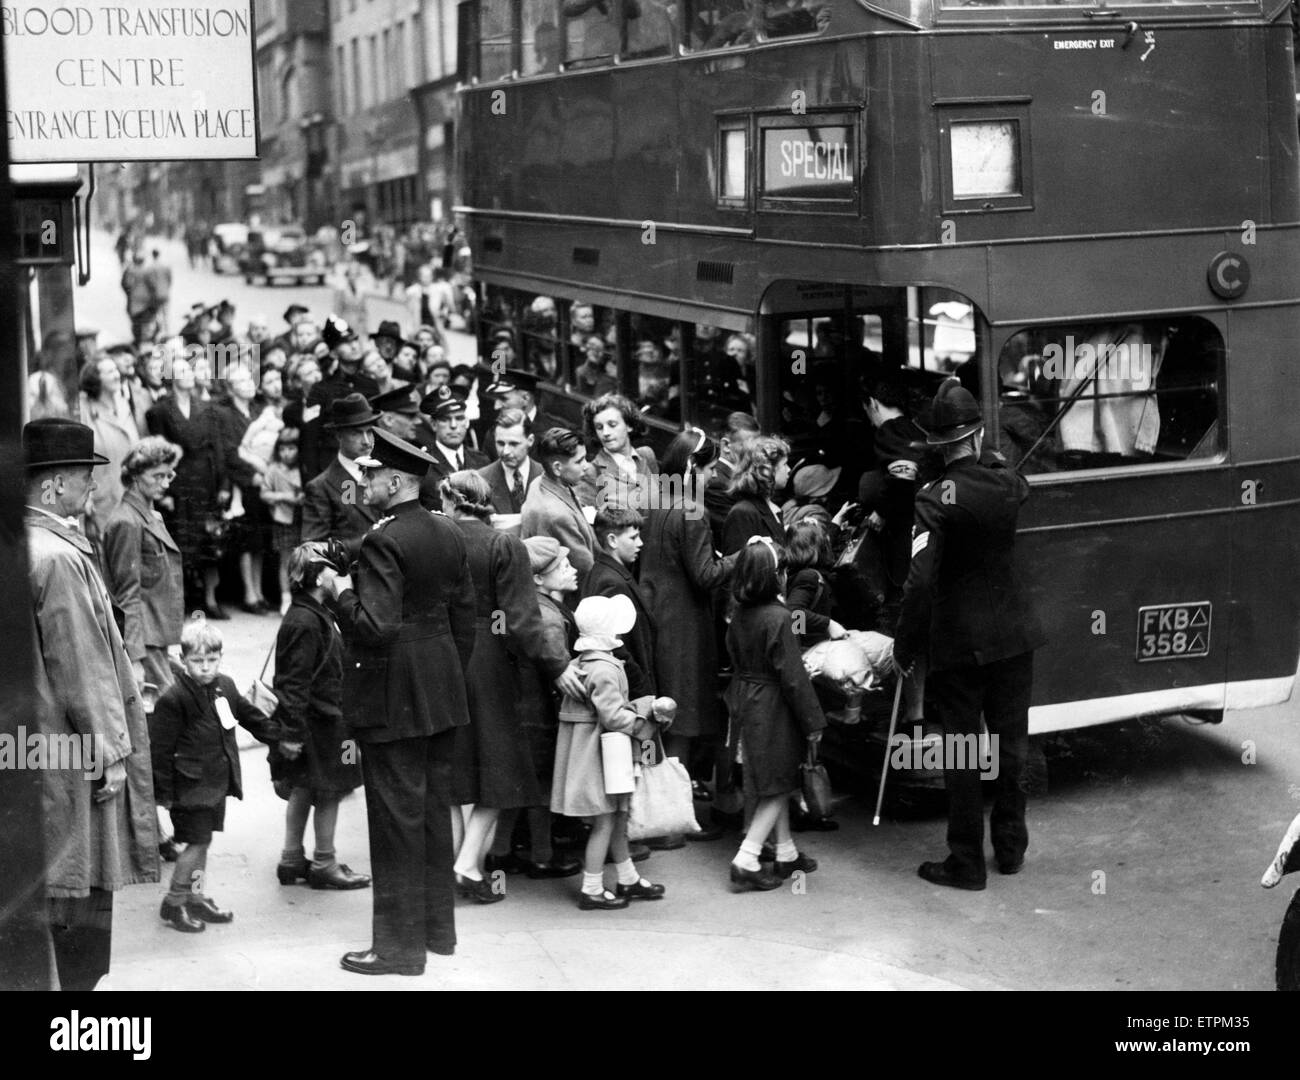 Flashback to the dark days of 1939, as Liverpool children board a bus to take them to safety. 1st September 1939. - Stock Image